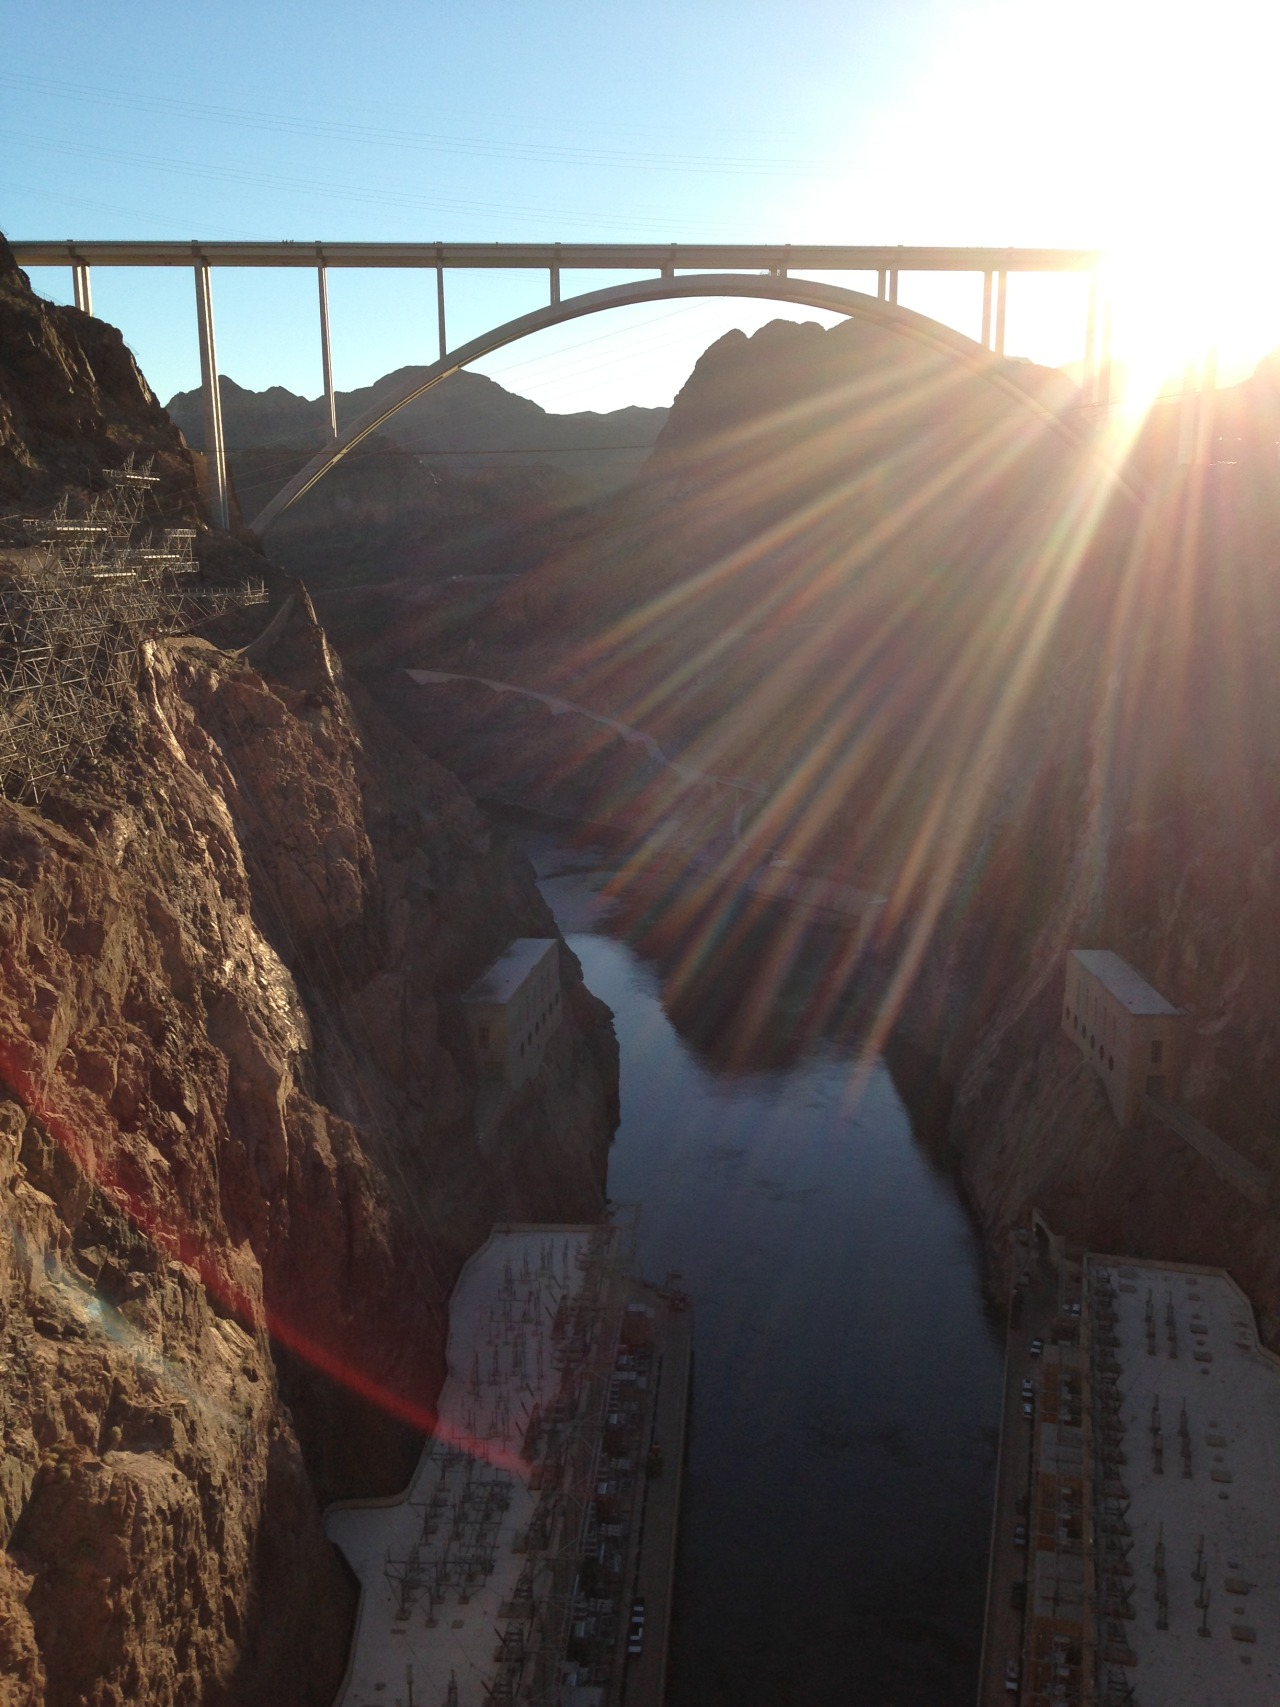 Taken at the Hoover Dam. January 2013.